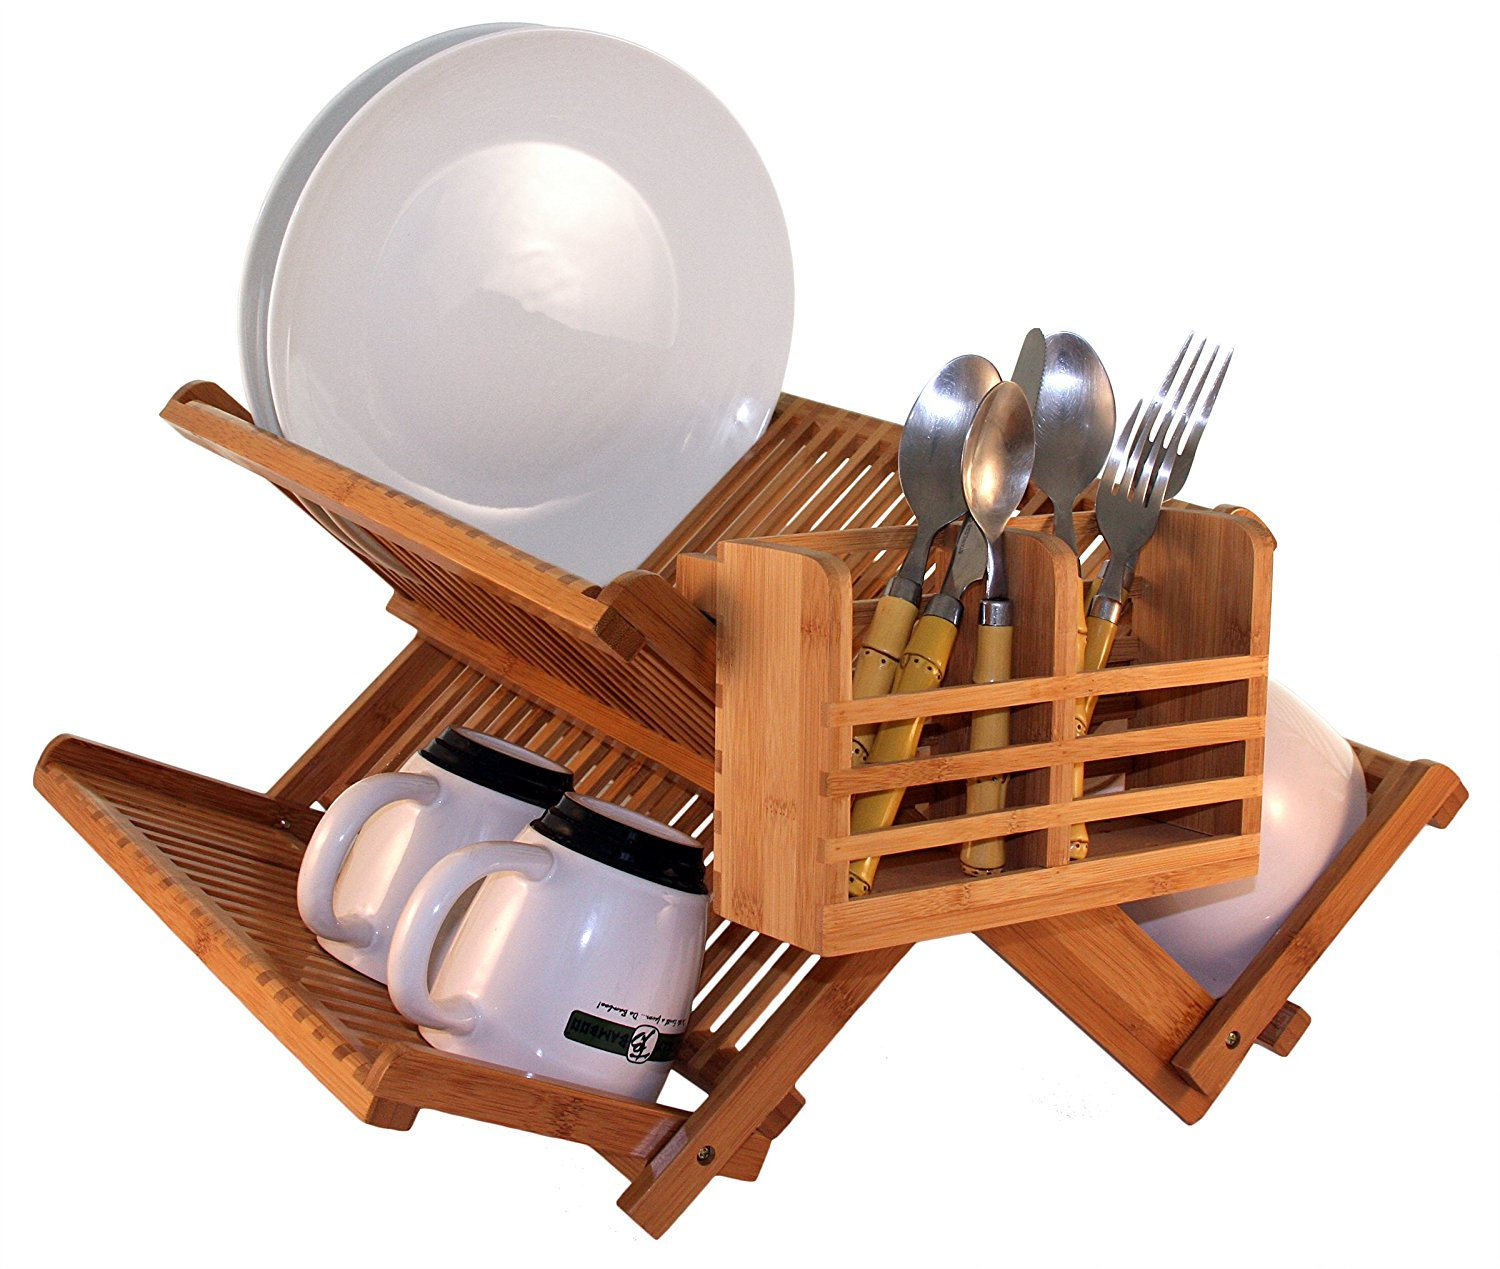 Great Price On Totally Bamboo Dish Drying Rack